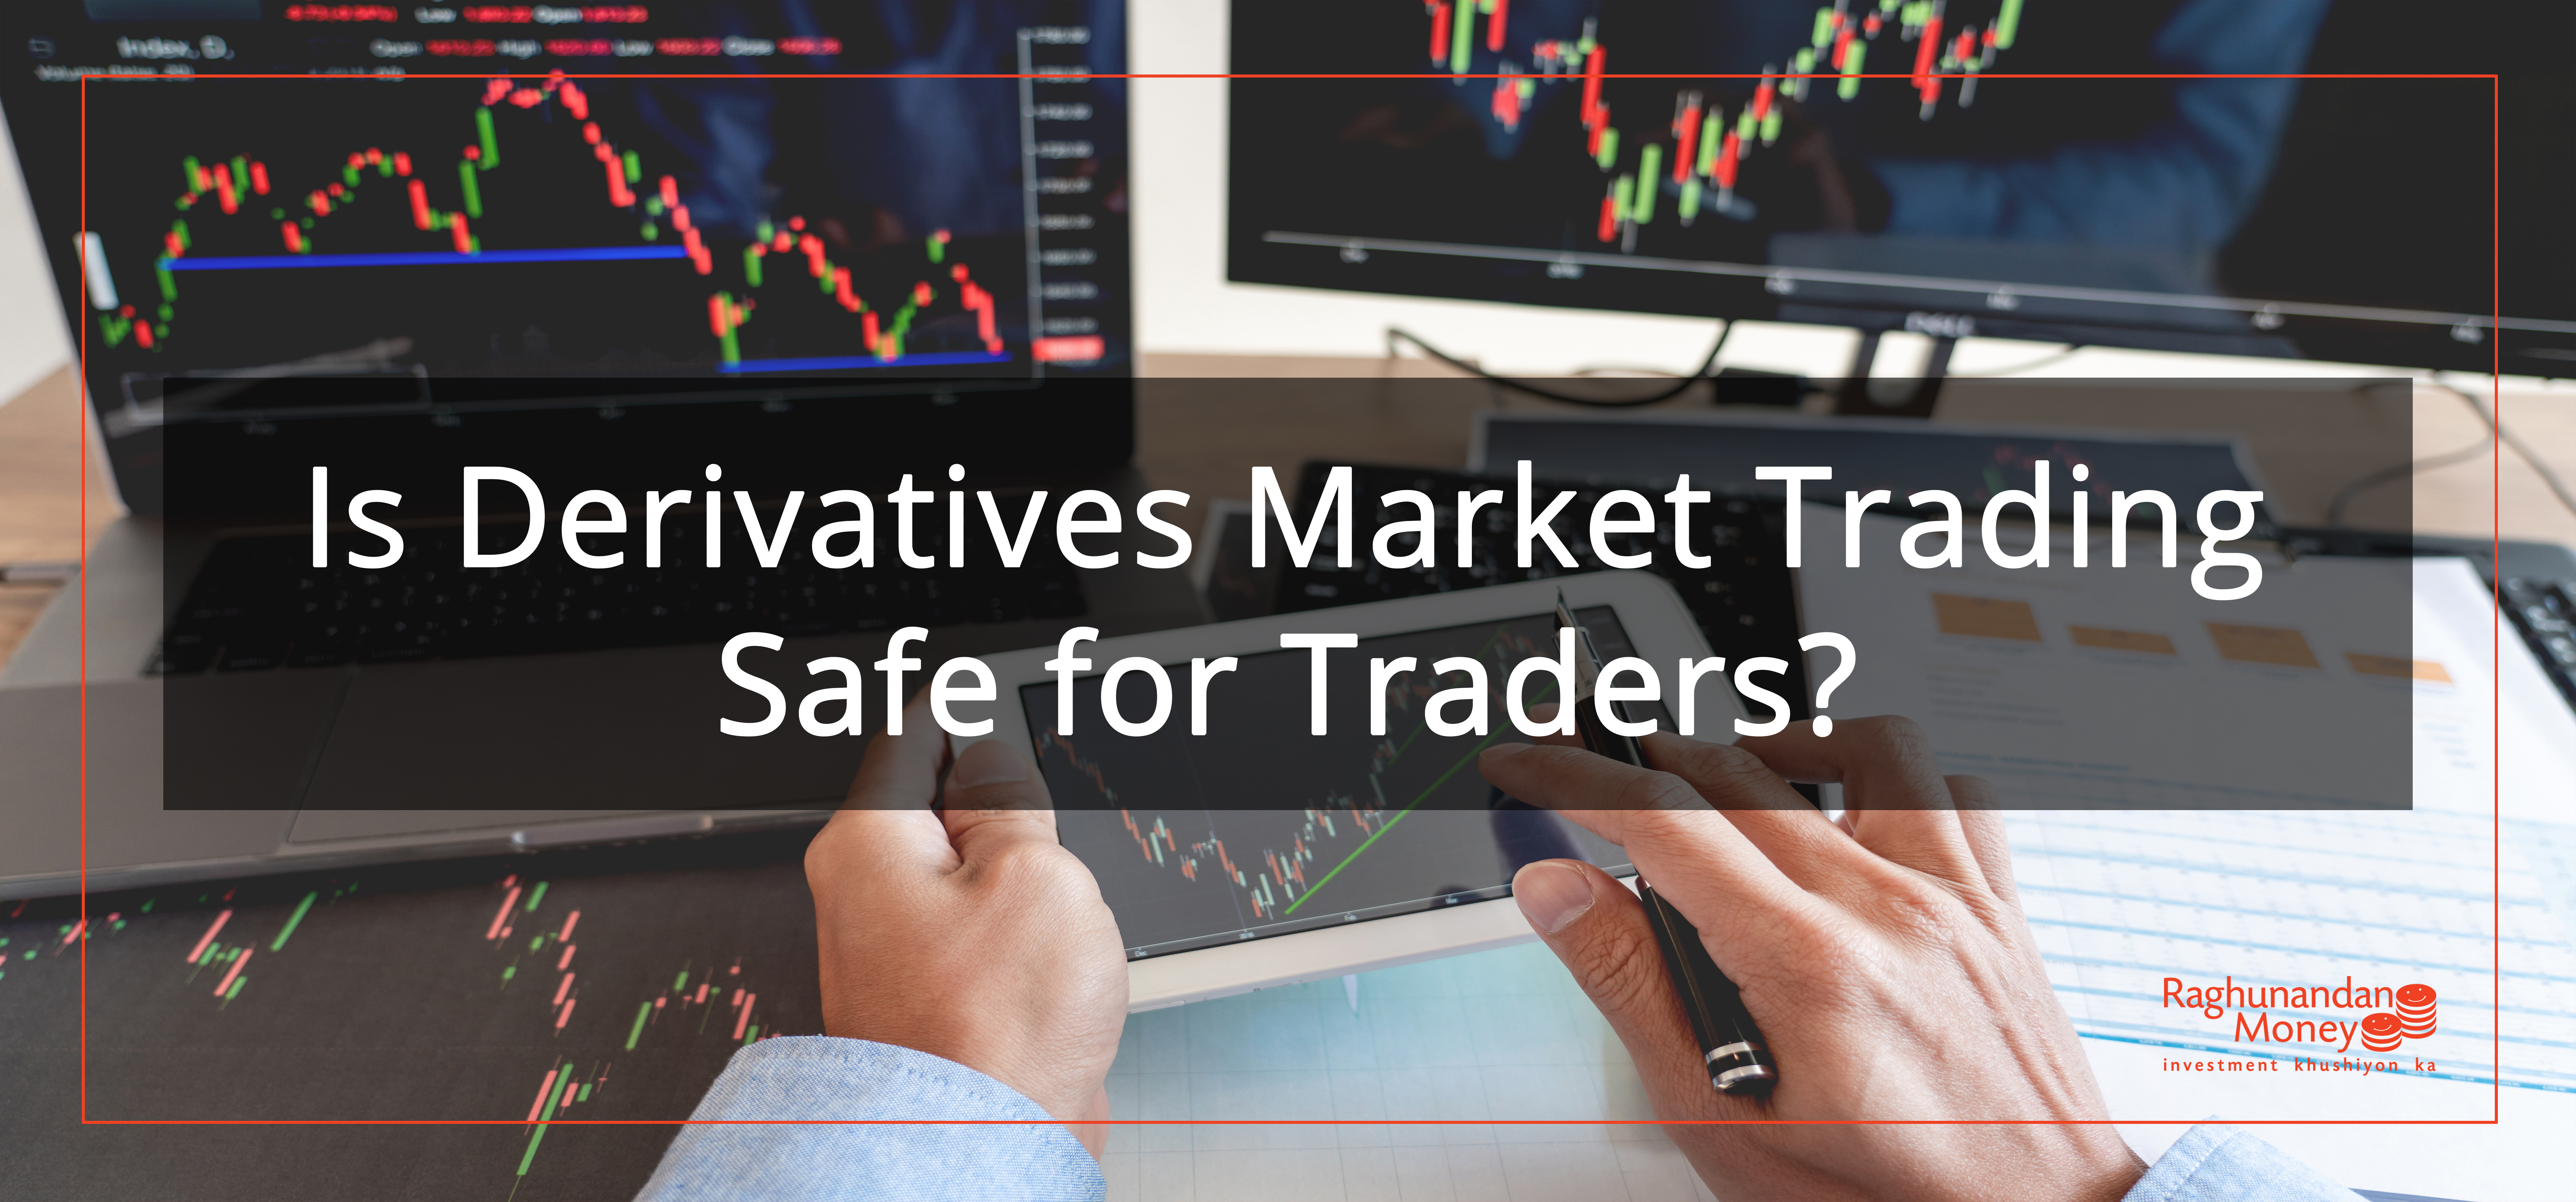 is trading in derivatives safe?